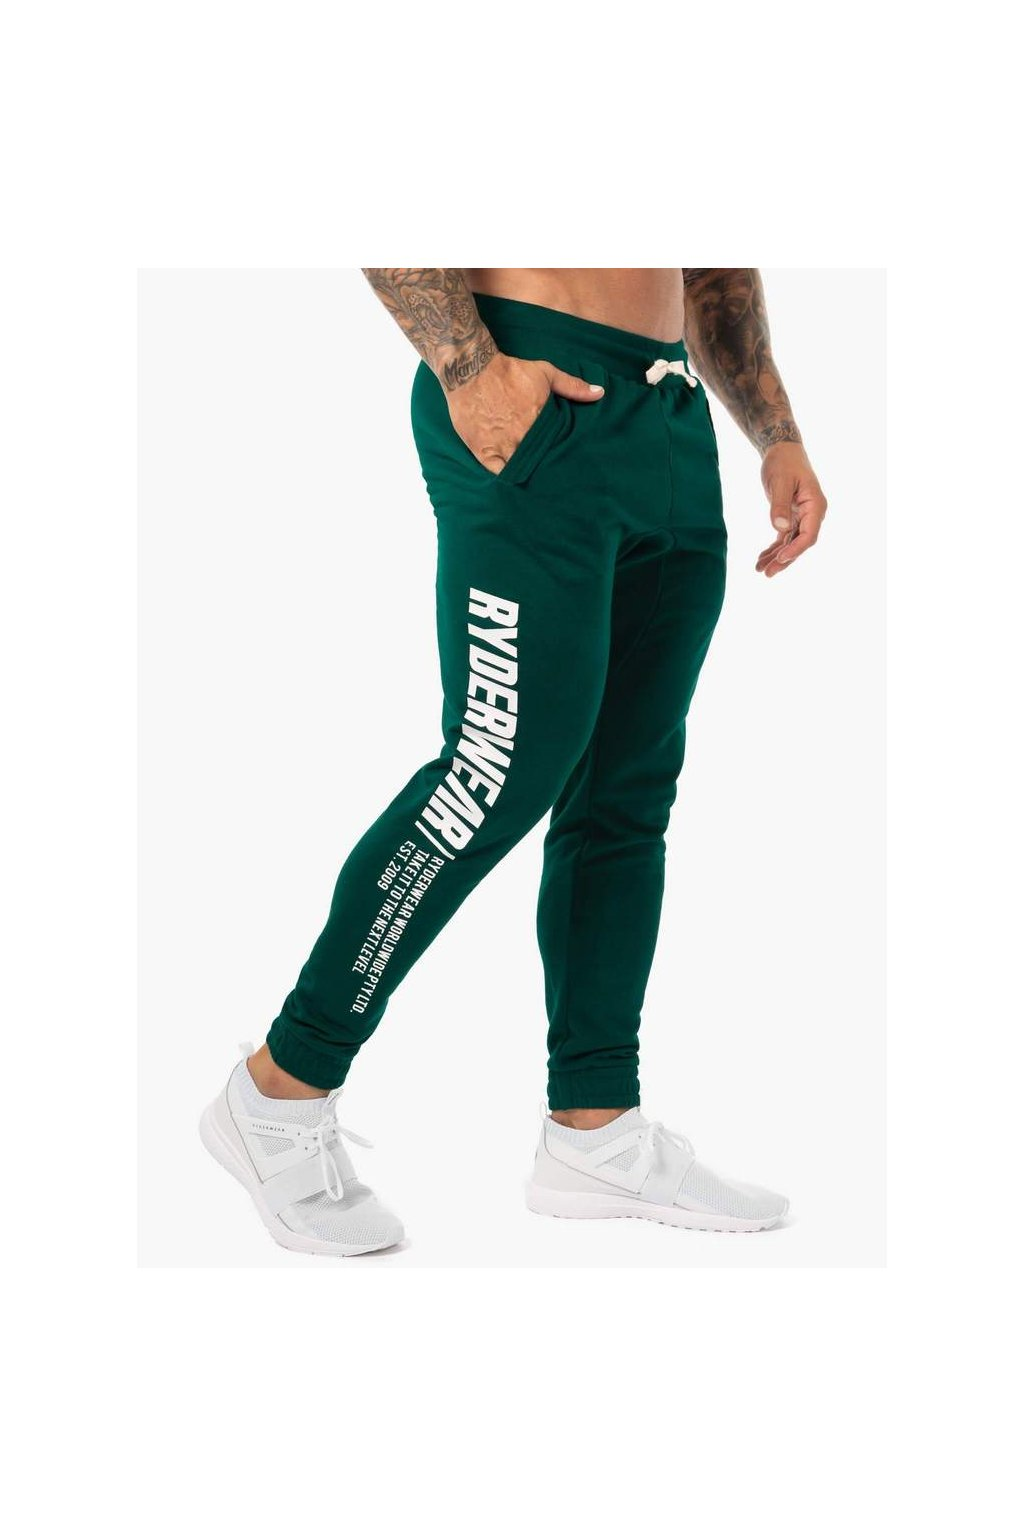 FLEECETRACKPANTS FORESTGREEN 2 a1ddbf44 5e9e 4f45 a19b 49e2f92dc058 1000x1000 (1)